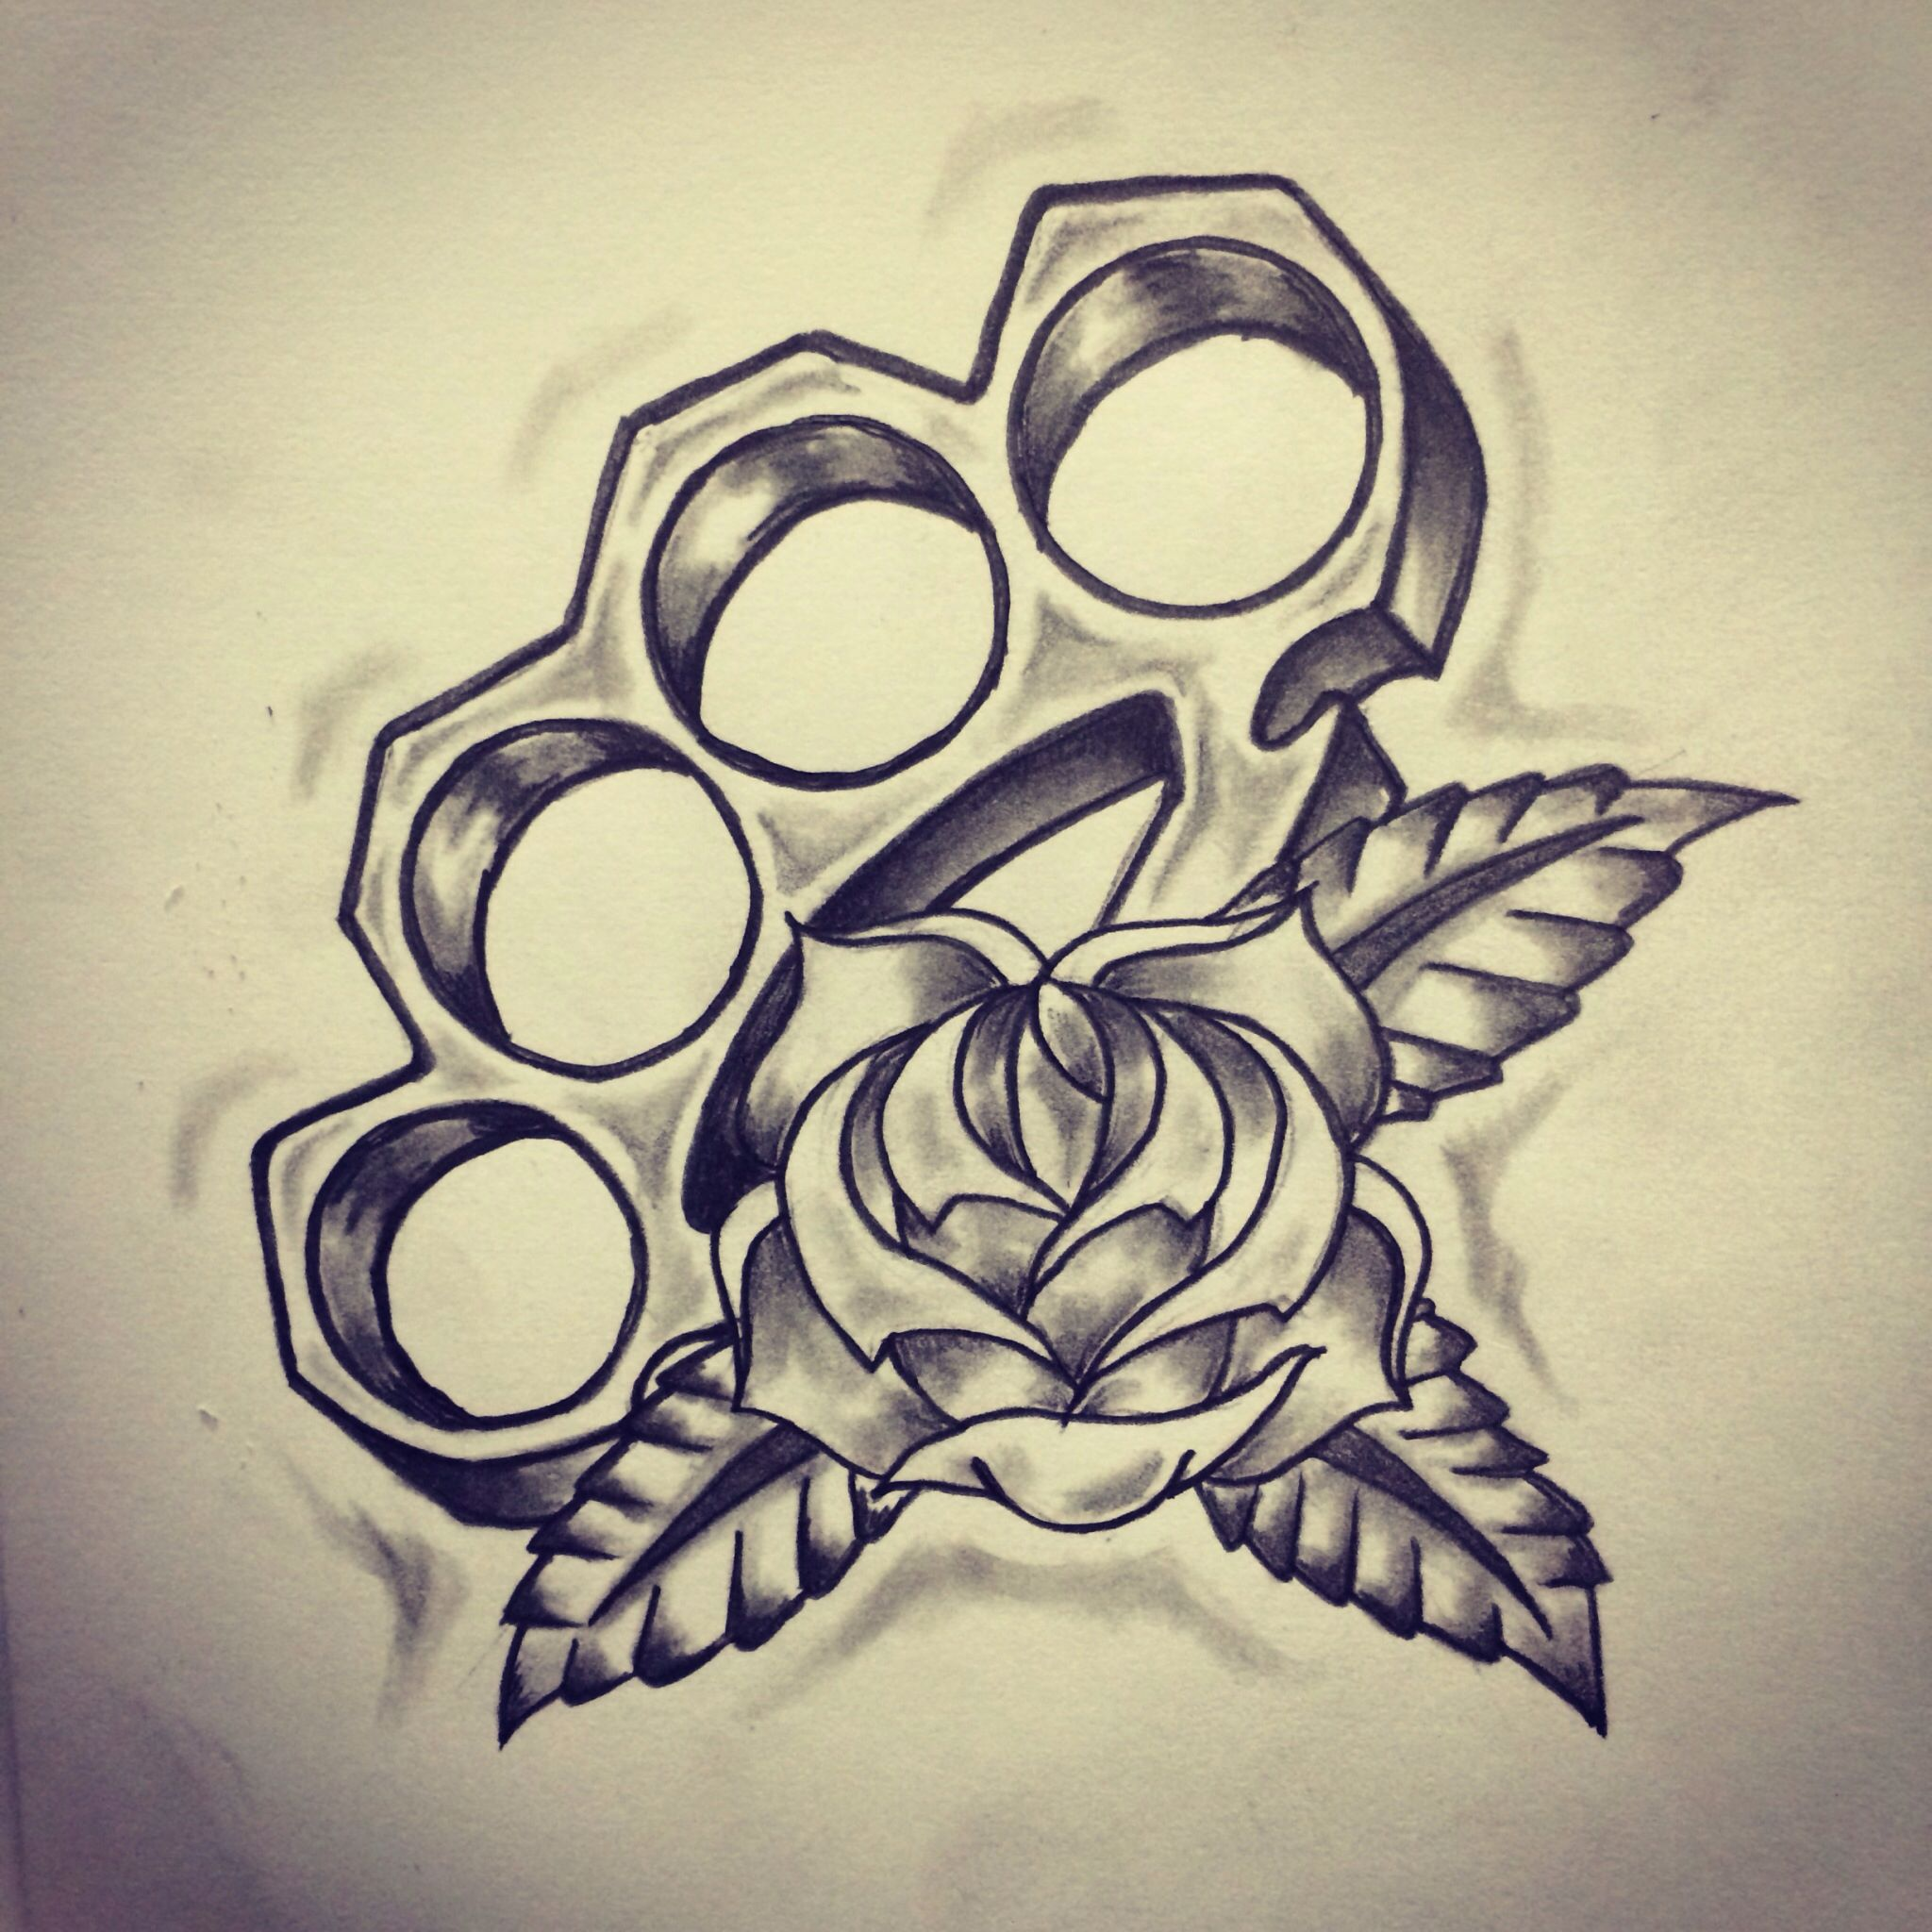 traditional brass knuckle rose tattoo sketch by ranz pinterest brass knuckles sketches. Black Bedroom Furniture Sets. Home Design Ideas